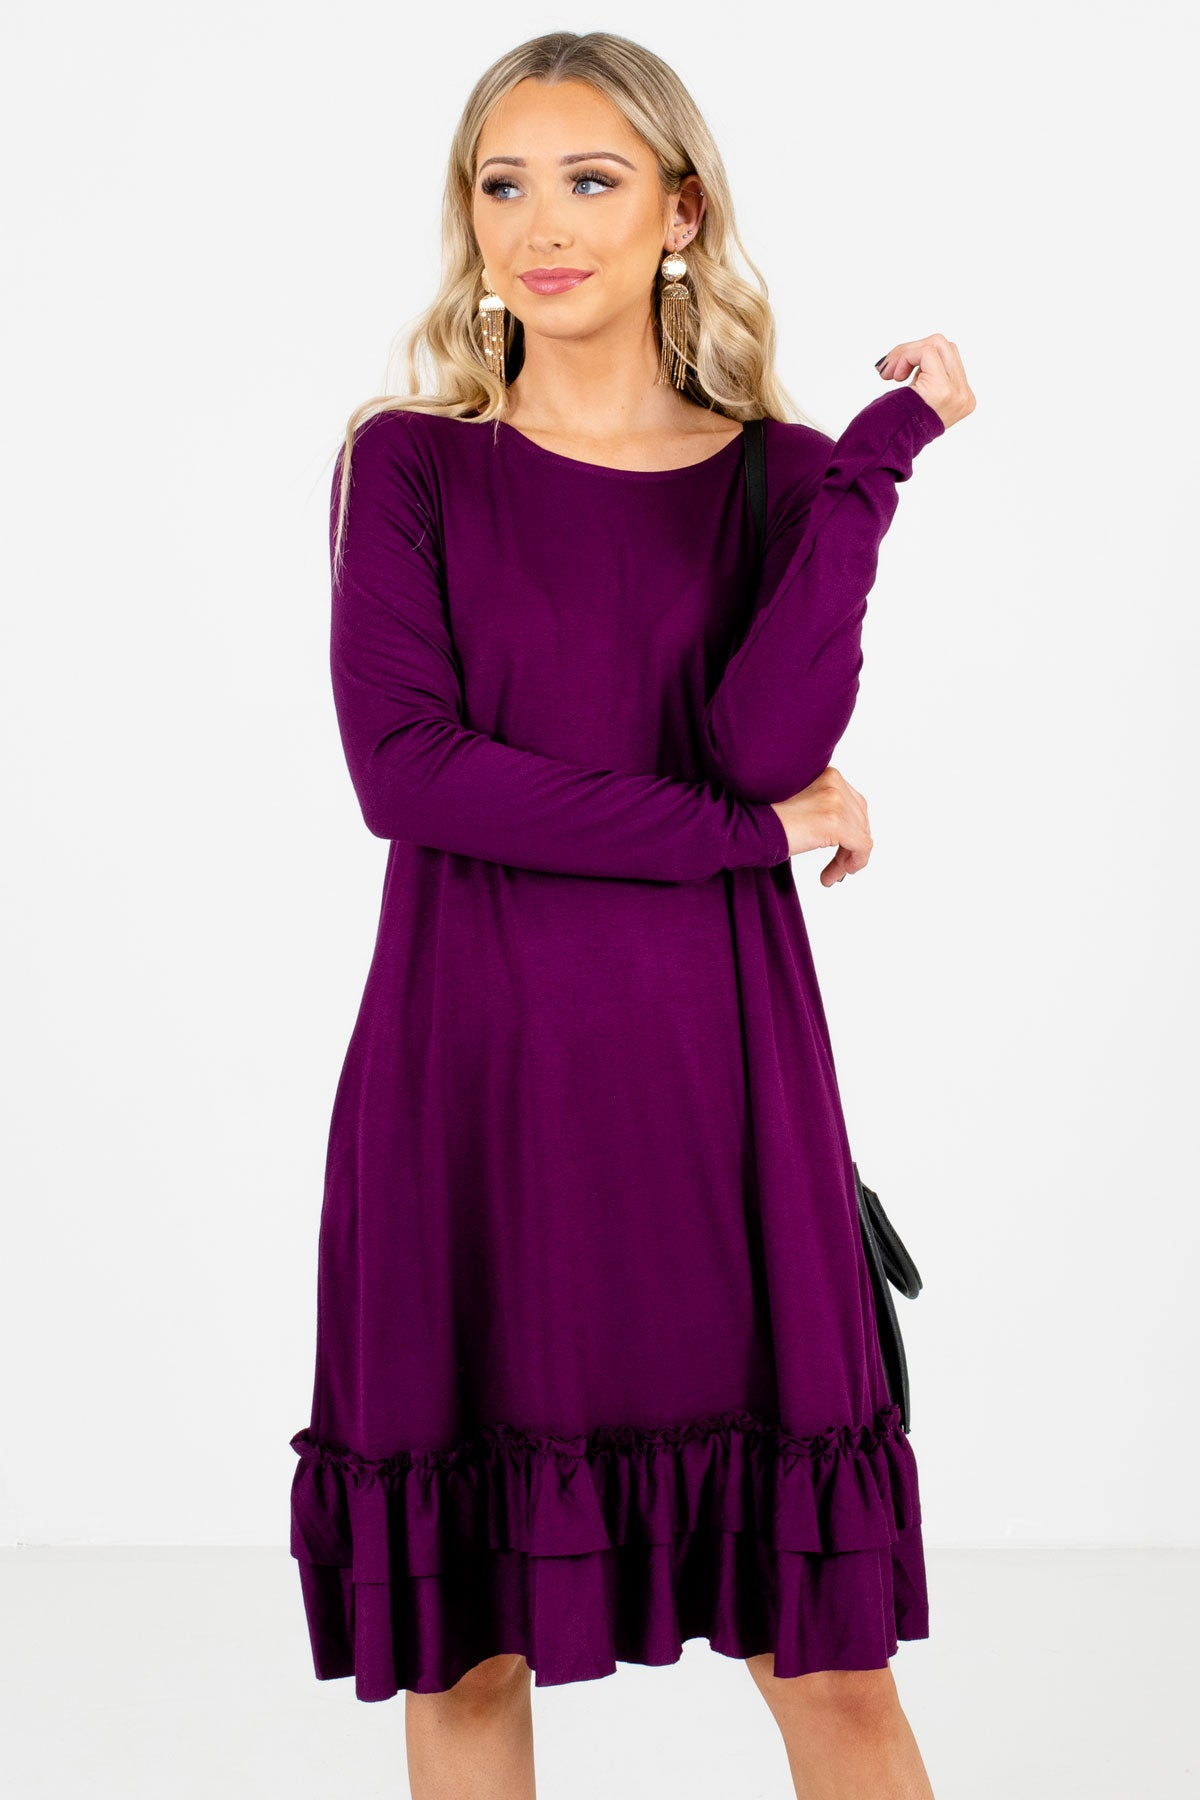 Purple Ruffled Hem Boutique Knee-Length Dresses for Women